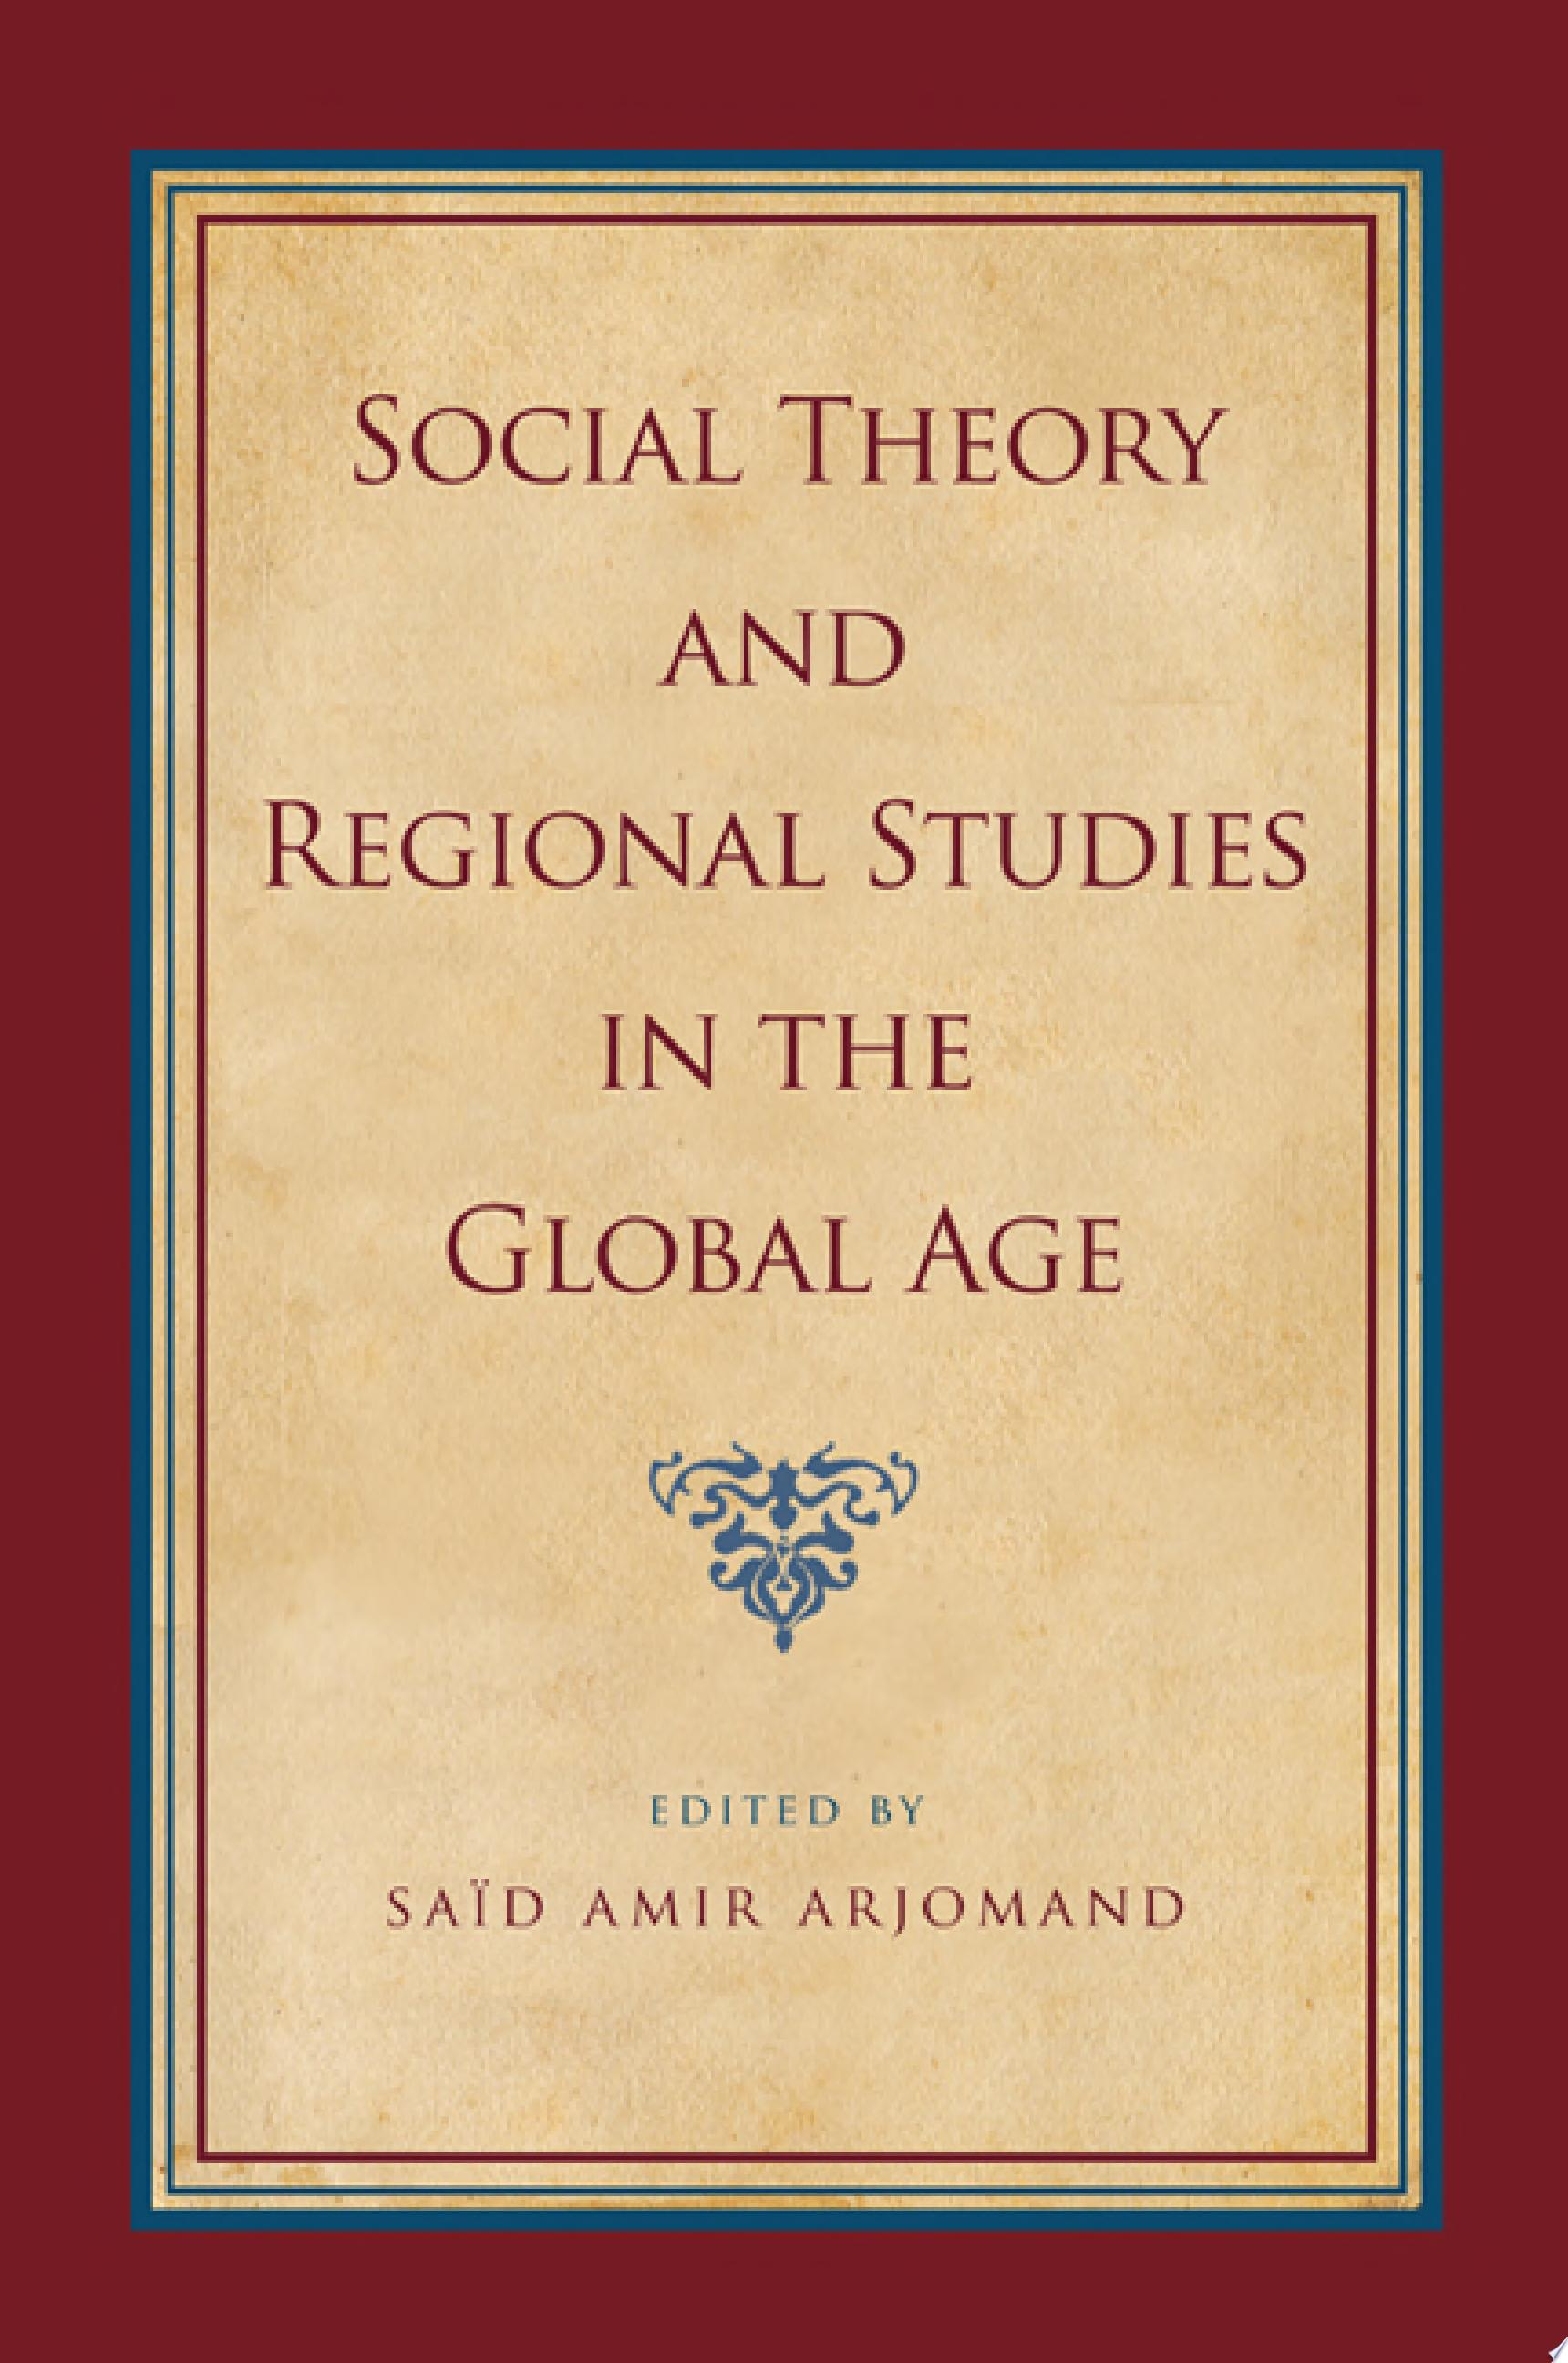 Social Theory and Regional Studies in the Global Age